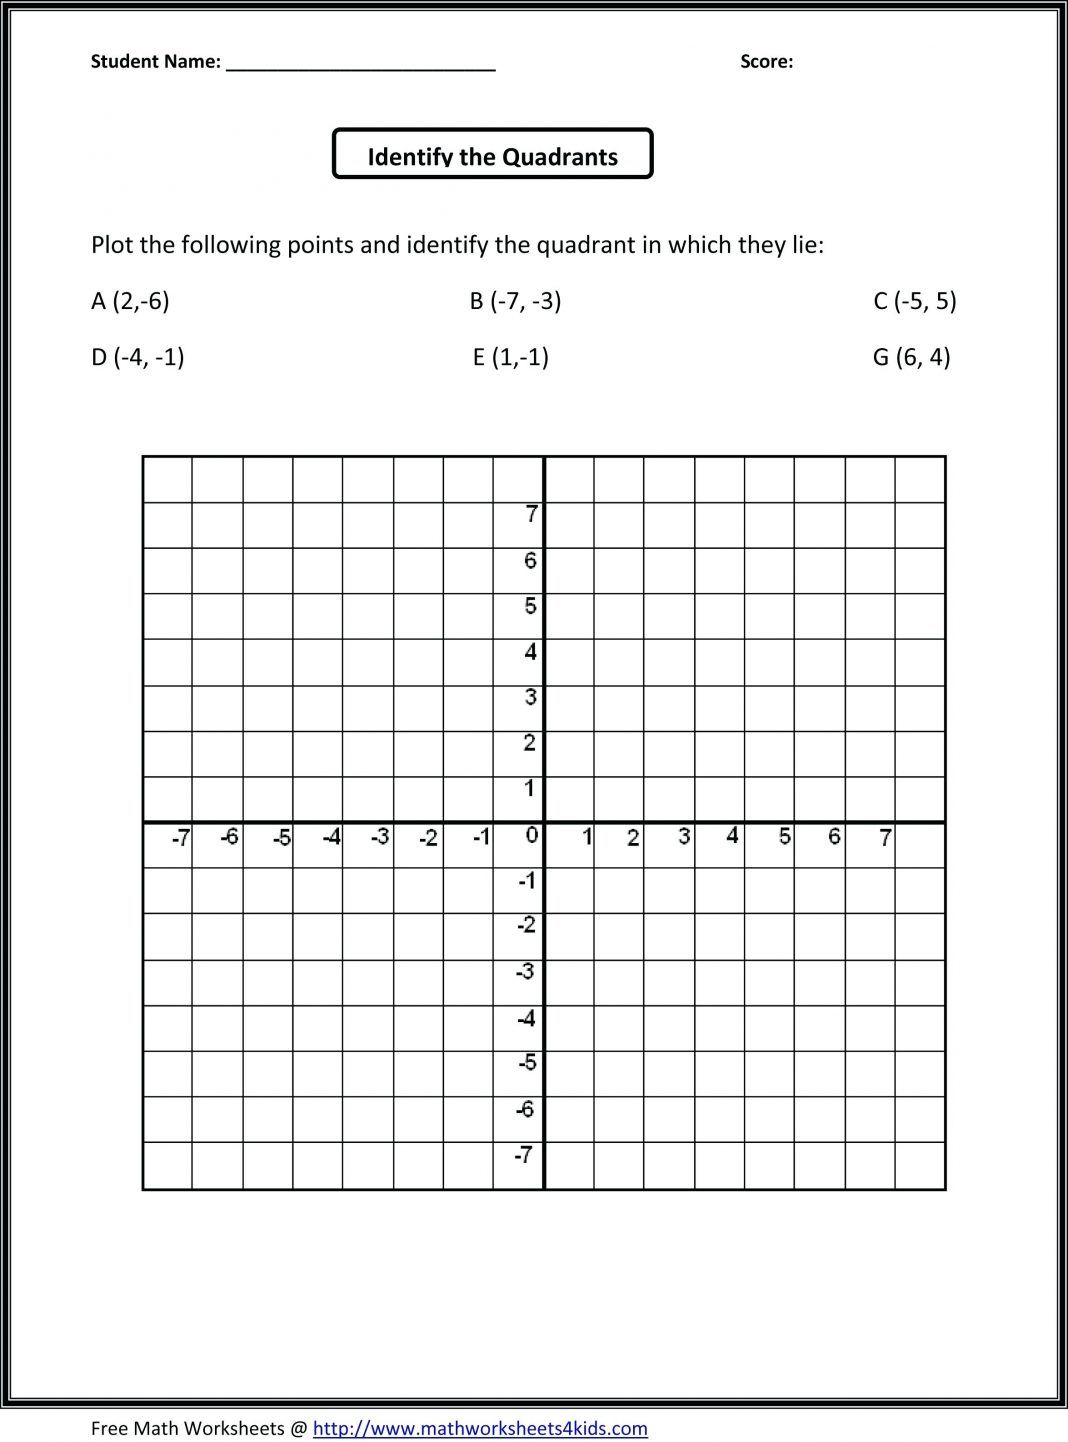 6th Grade Math Worksheets Of 41 Stunning 6th Grade Math